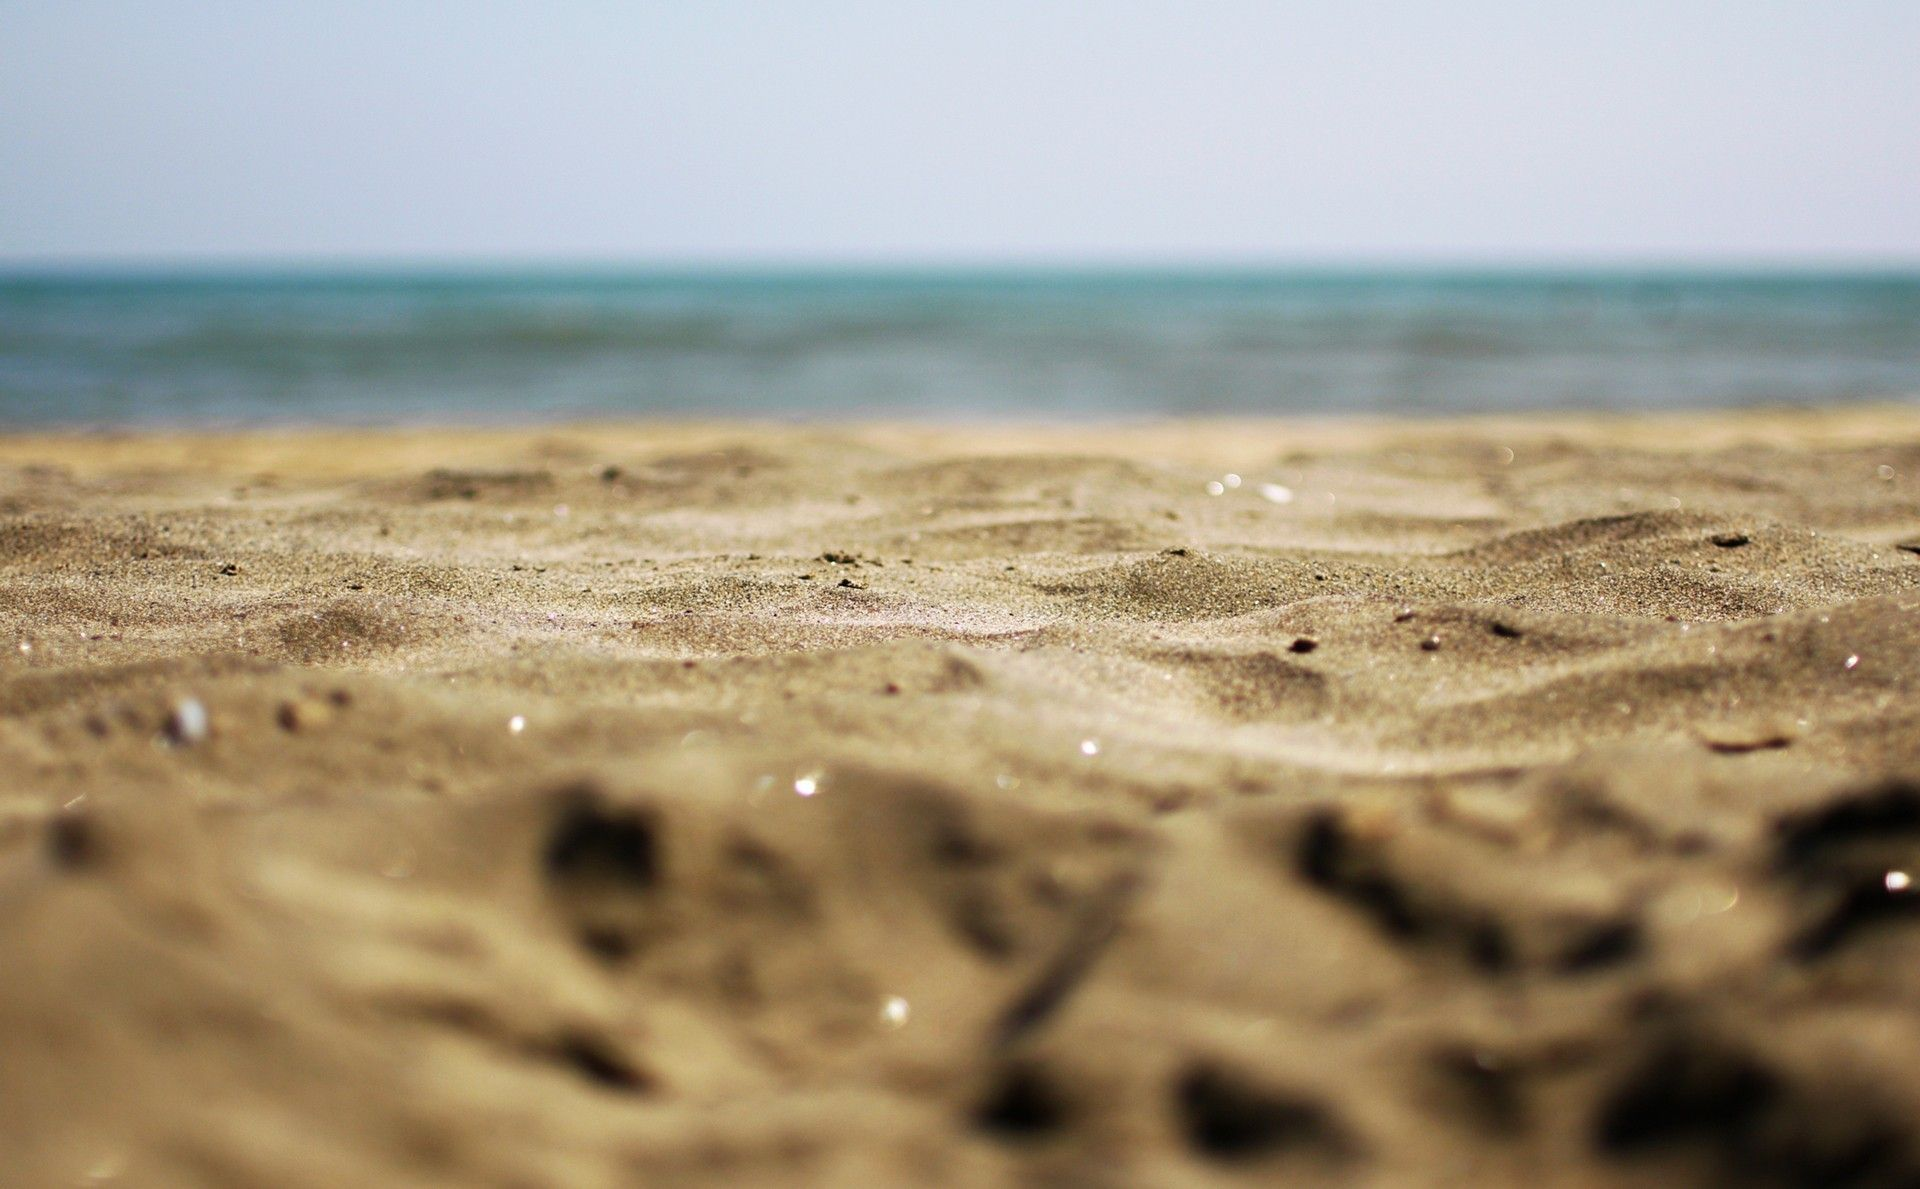 Beach Sand Wallpaper Free Large Images Beach Sand Sea Wallpaper Sand Pictures Beach Sand Beach Photos